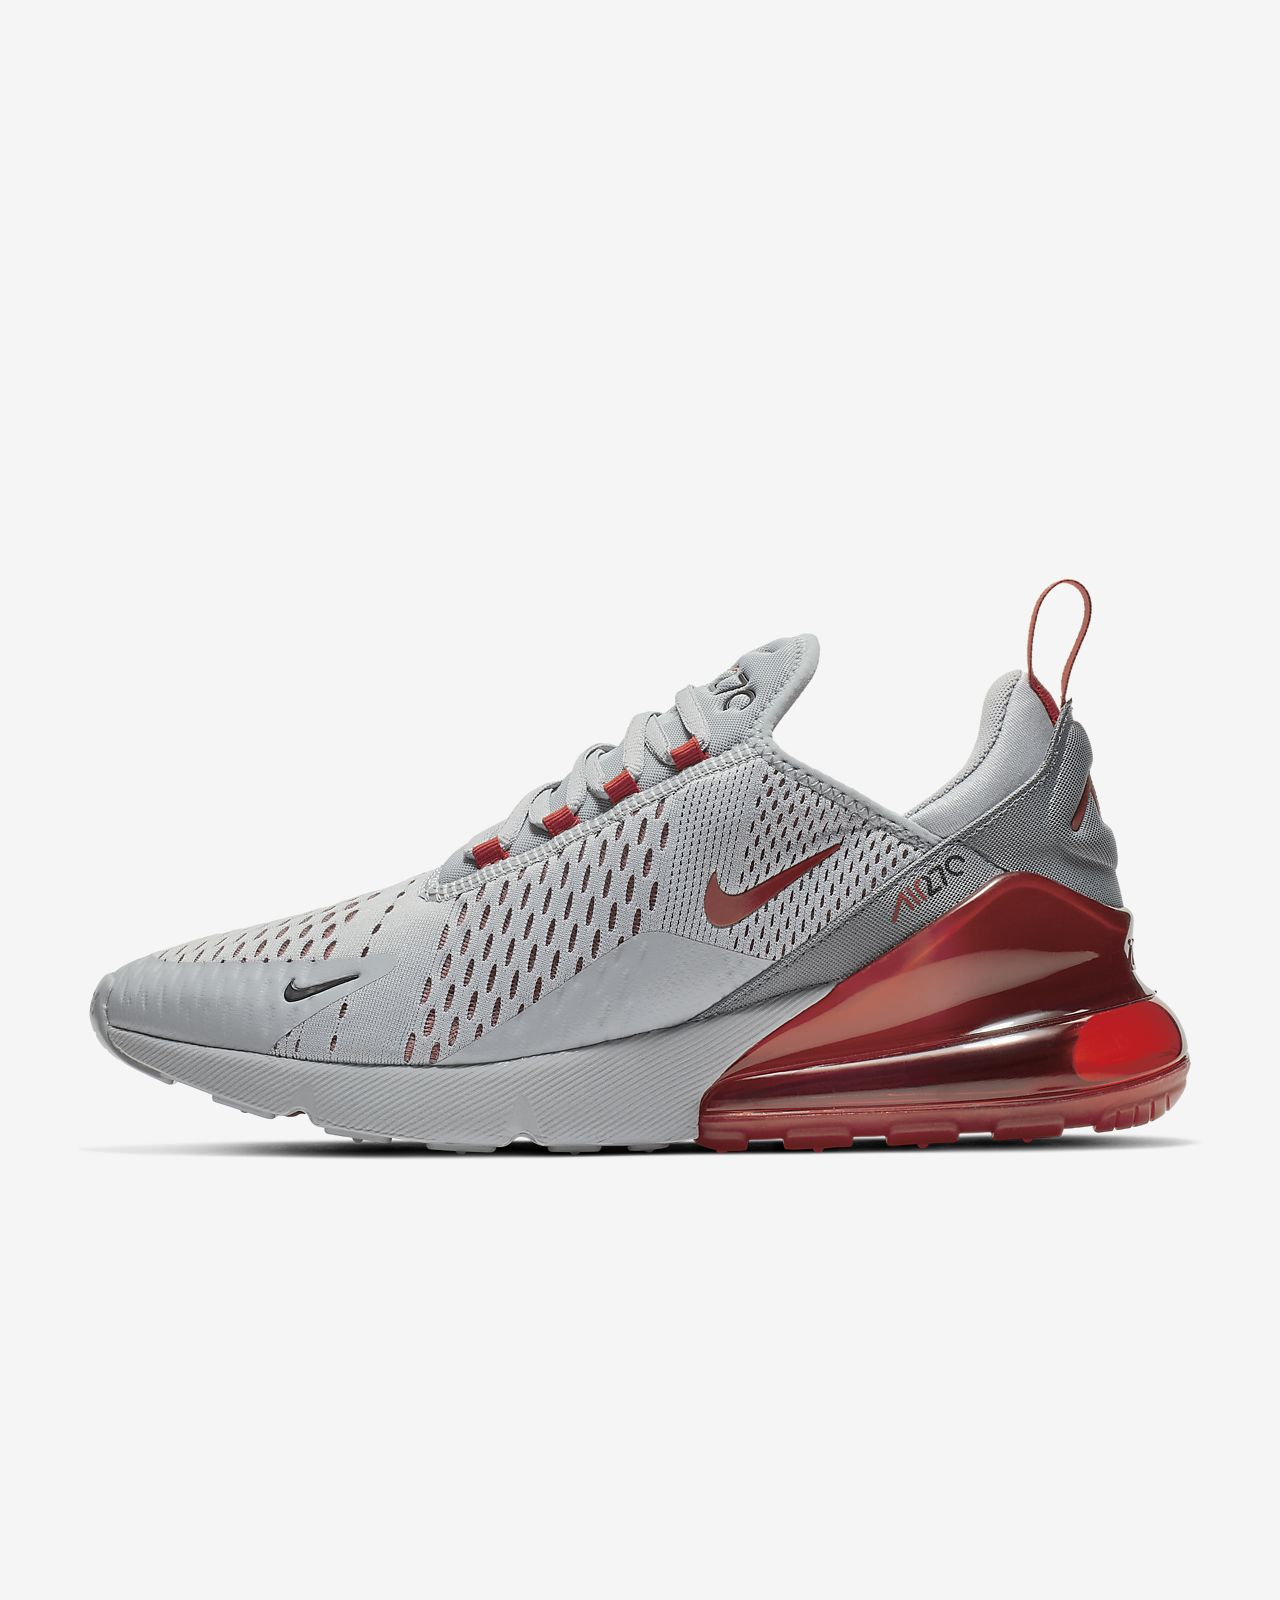 meet 5f15b ad3b1 Men s Shoe. Nike Air Max 270